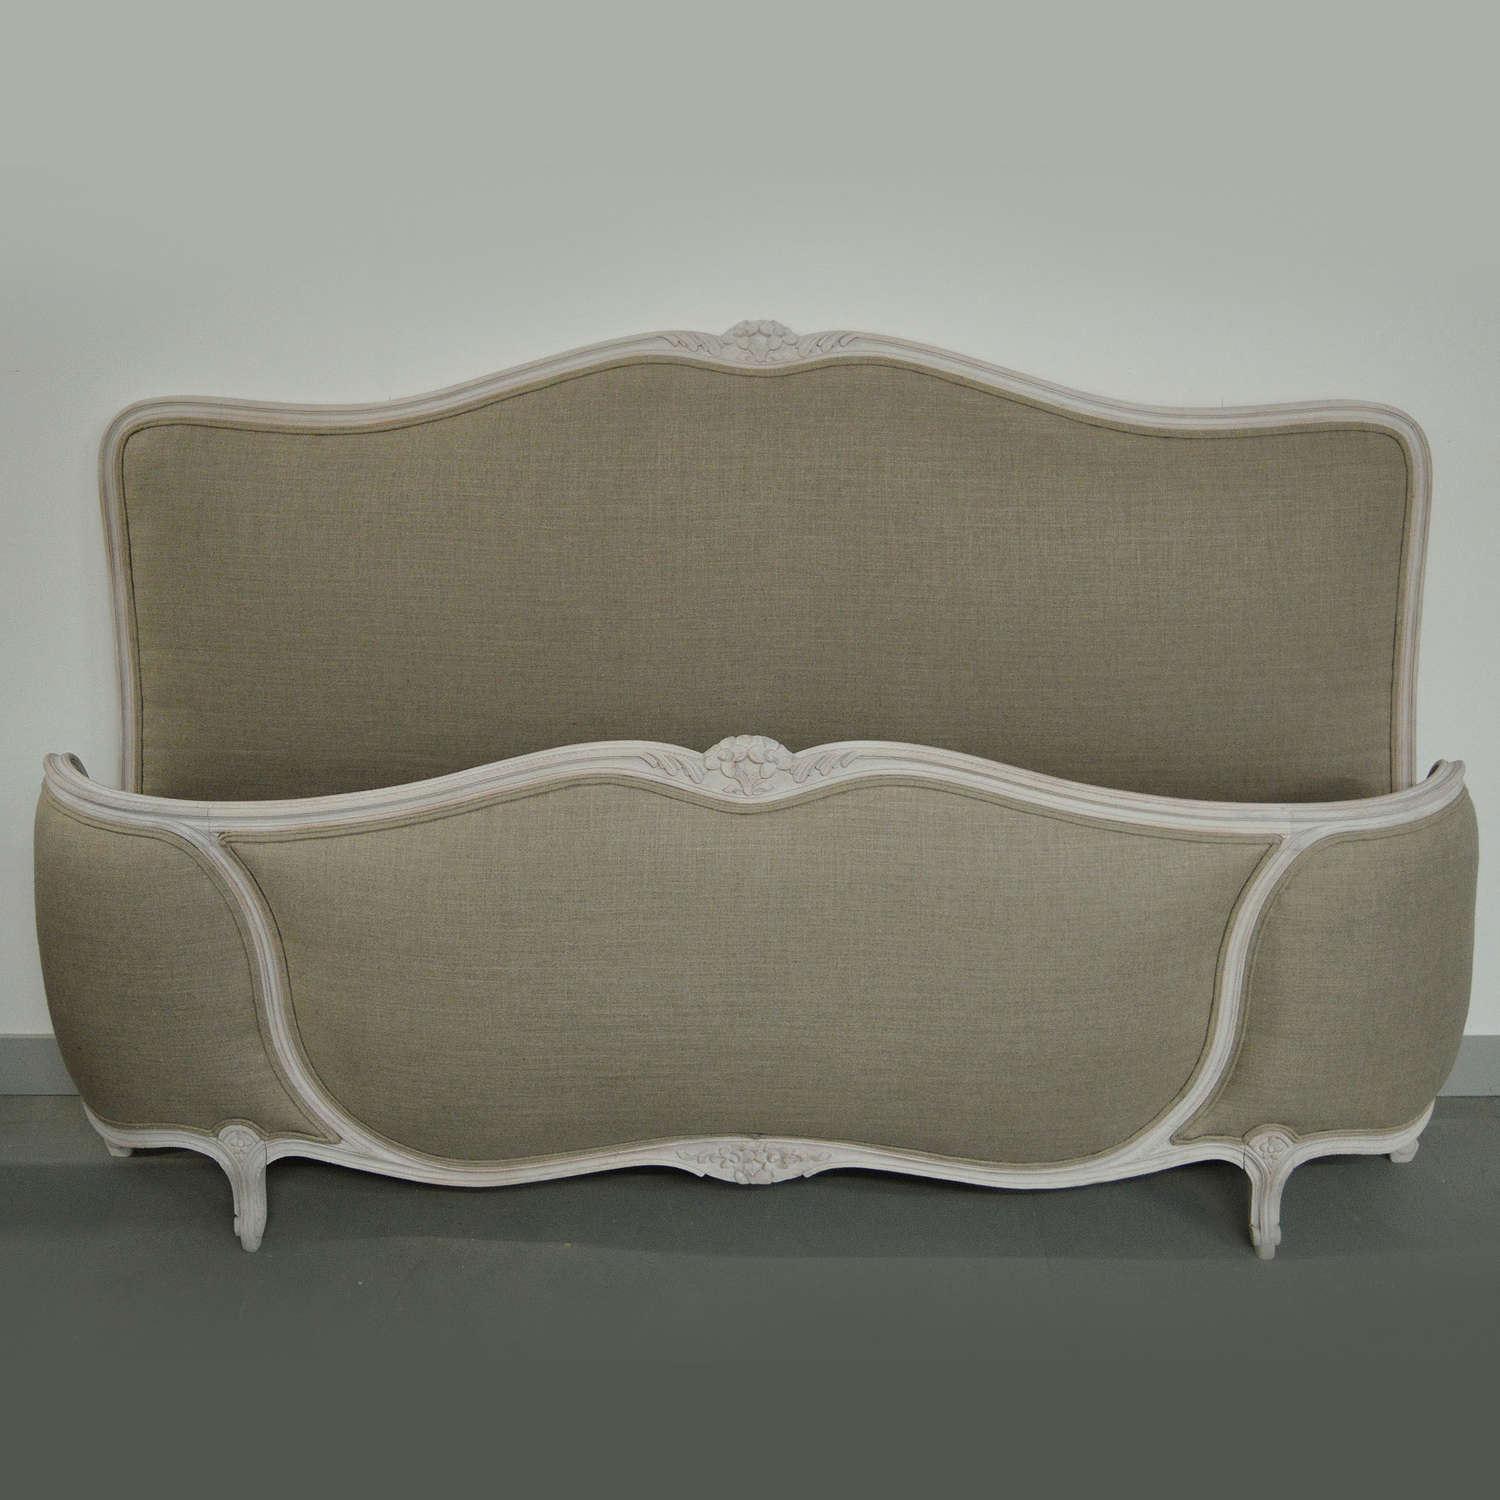 Super-king Louis XV style upholstered bedstead